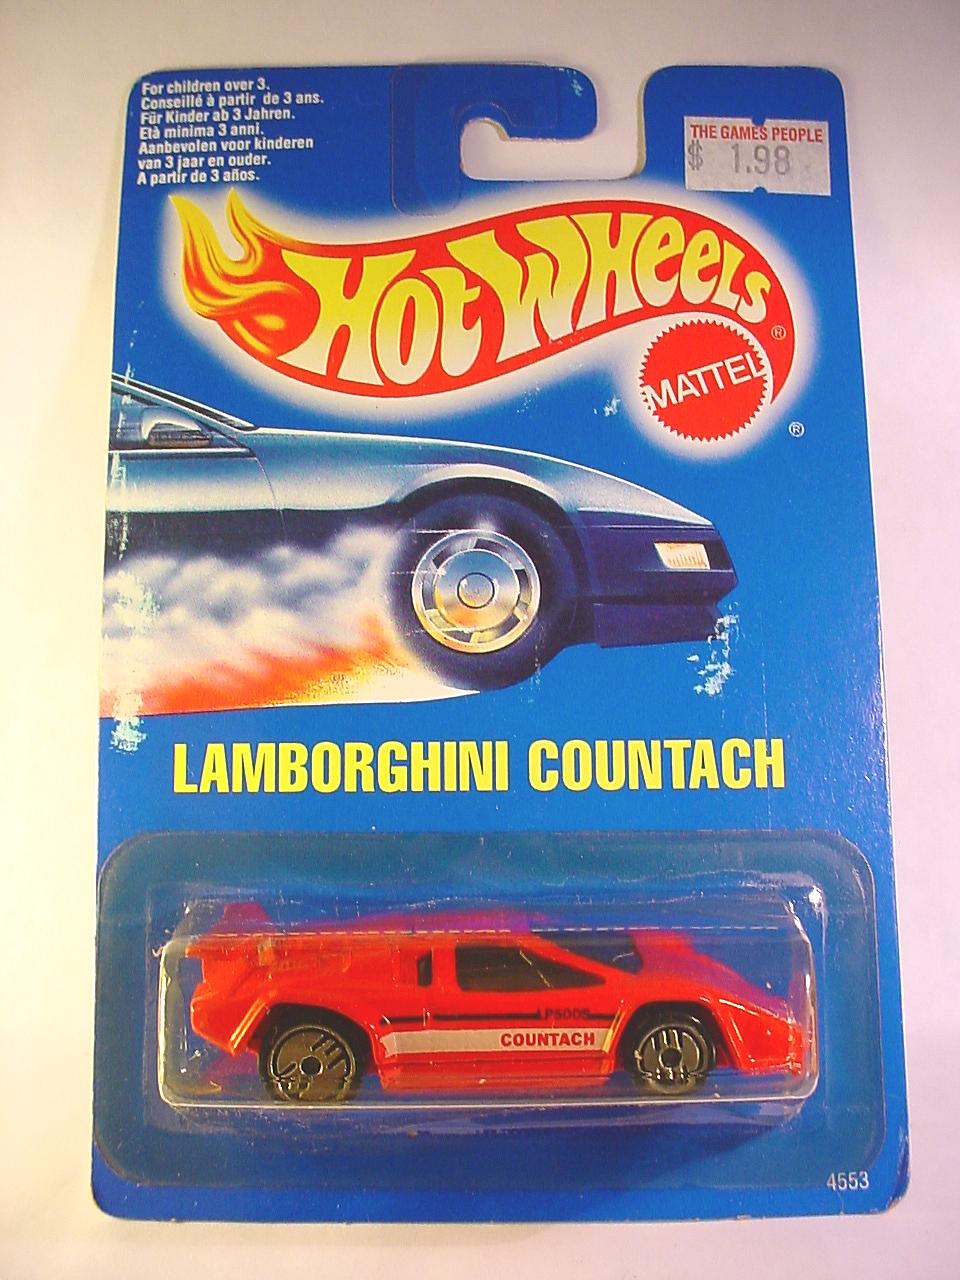 1993 lamborghini countach 4553 int hot wheels online variation guide wiki fandom powered by. Black Bedroom Furniture Sets. Home Design Ideas